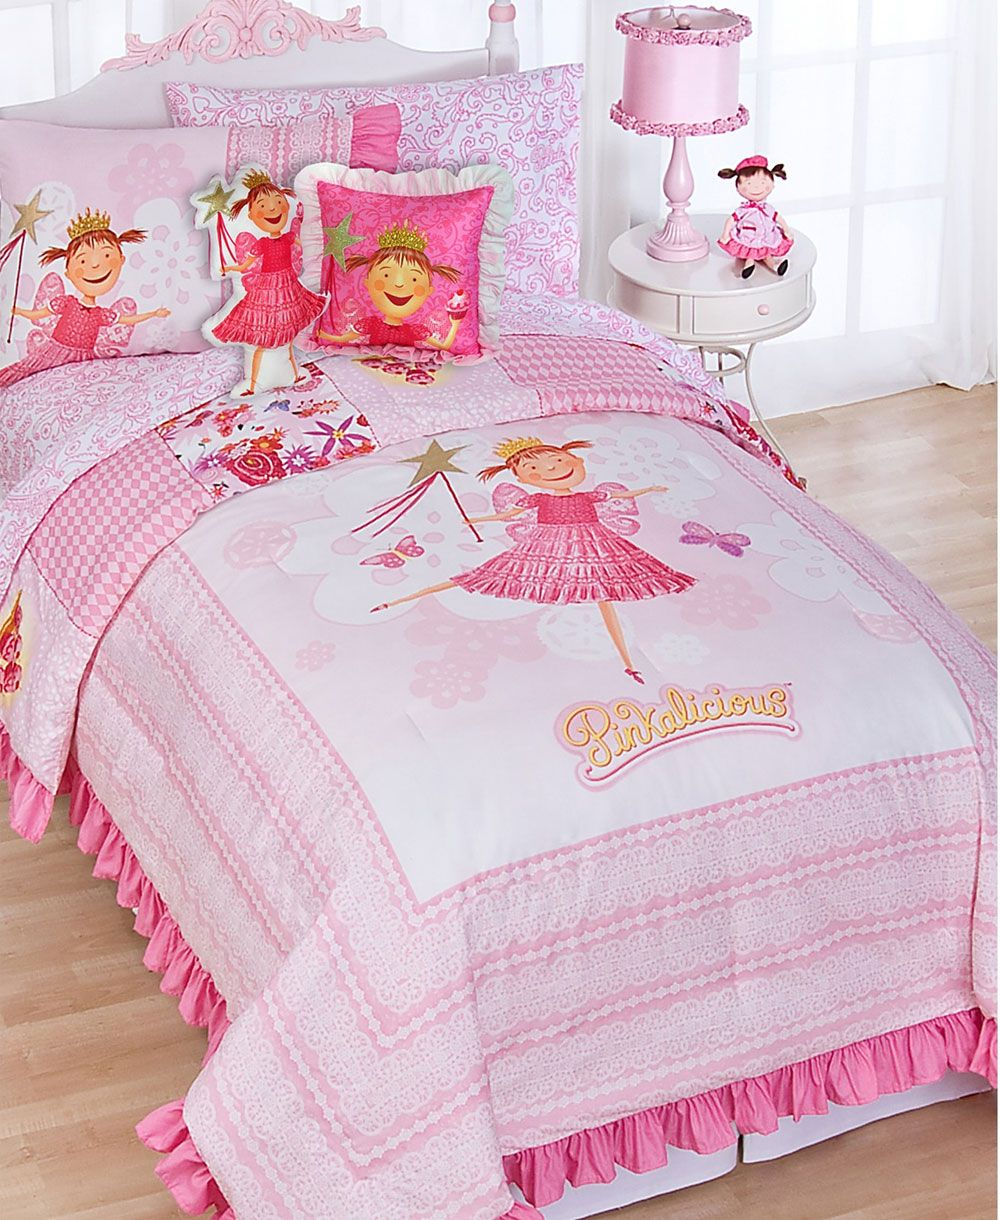 Beige Pillowcase Set 2pc Solid Color Bedding Pillow Covers Pink Comforter Full Sets